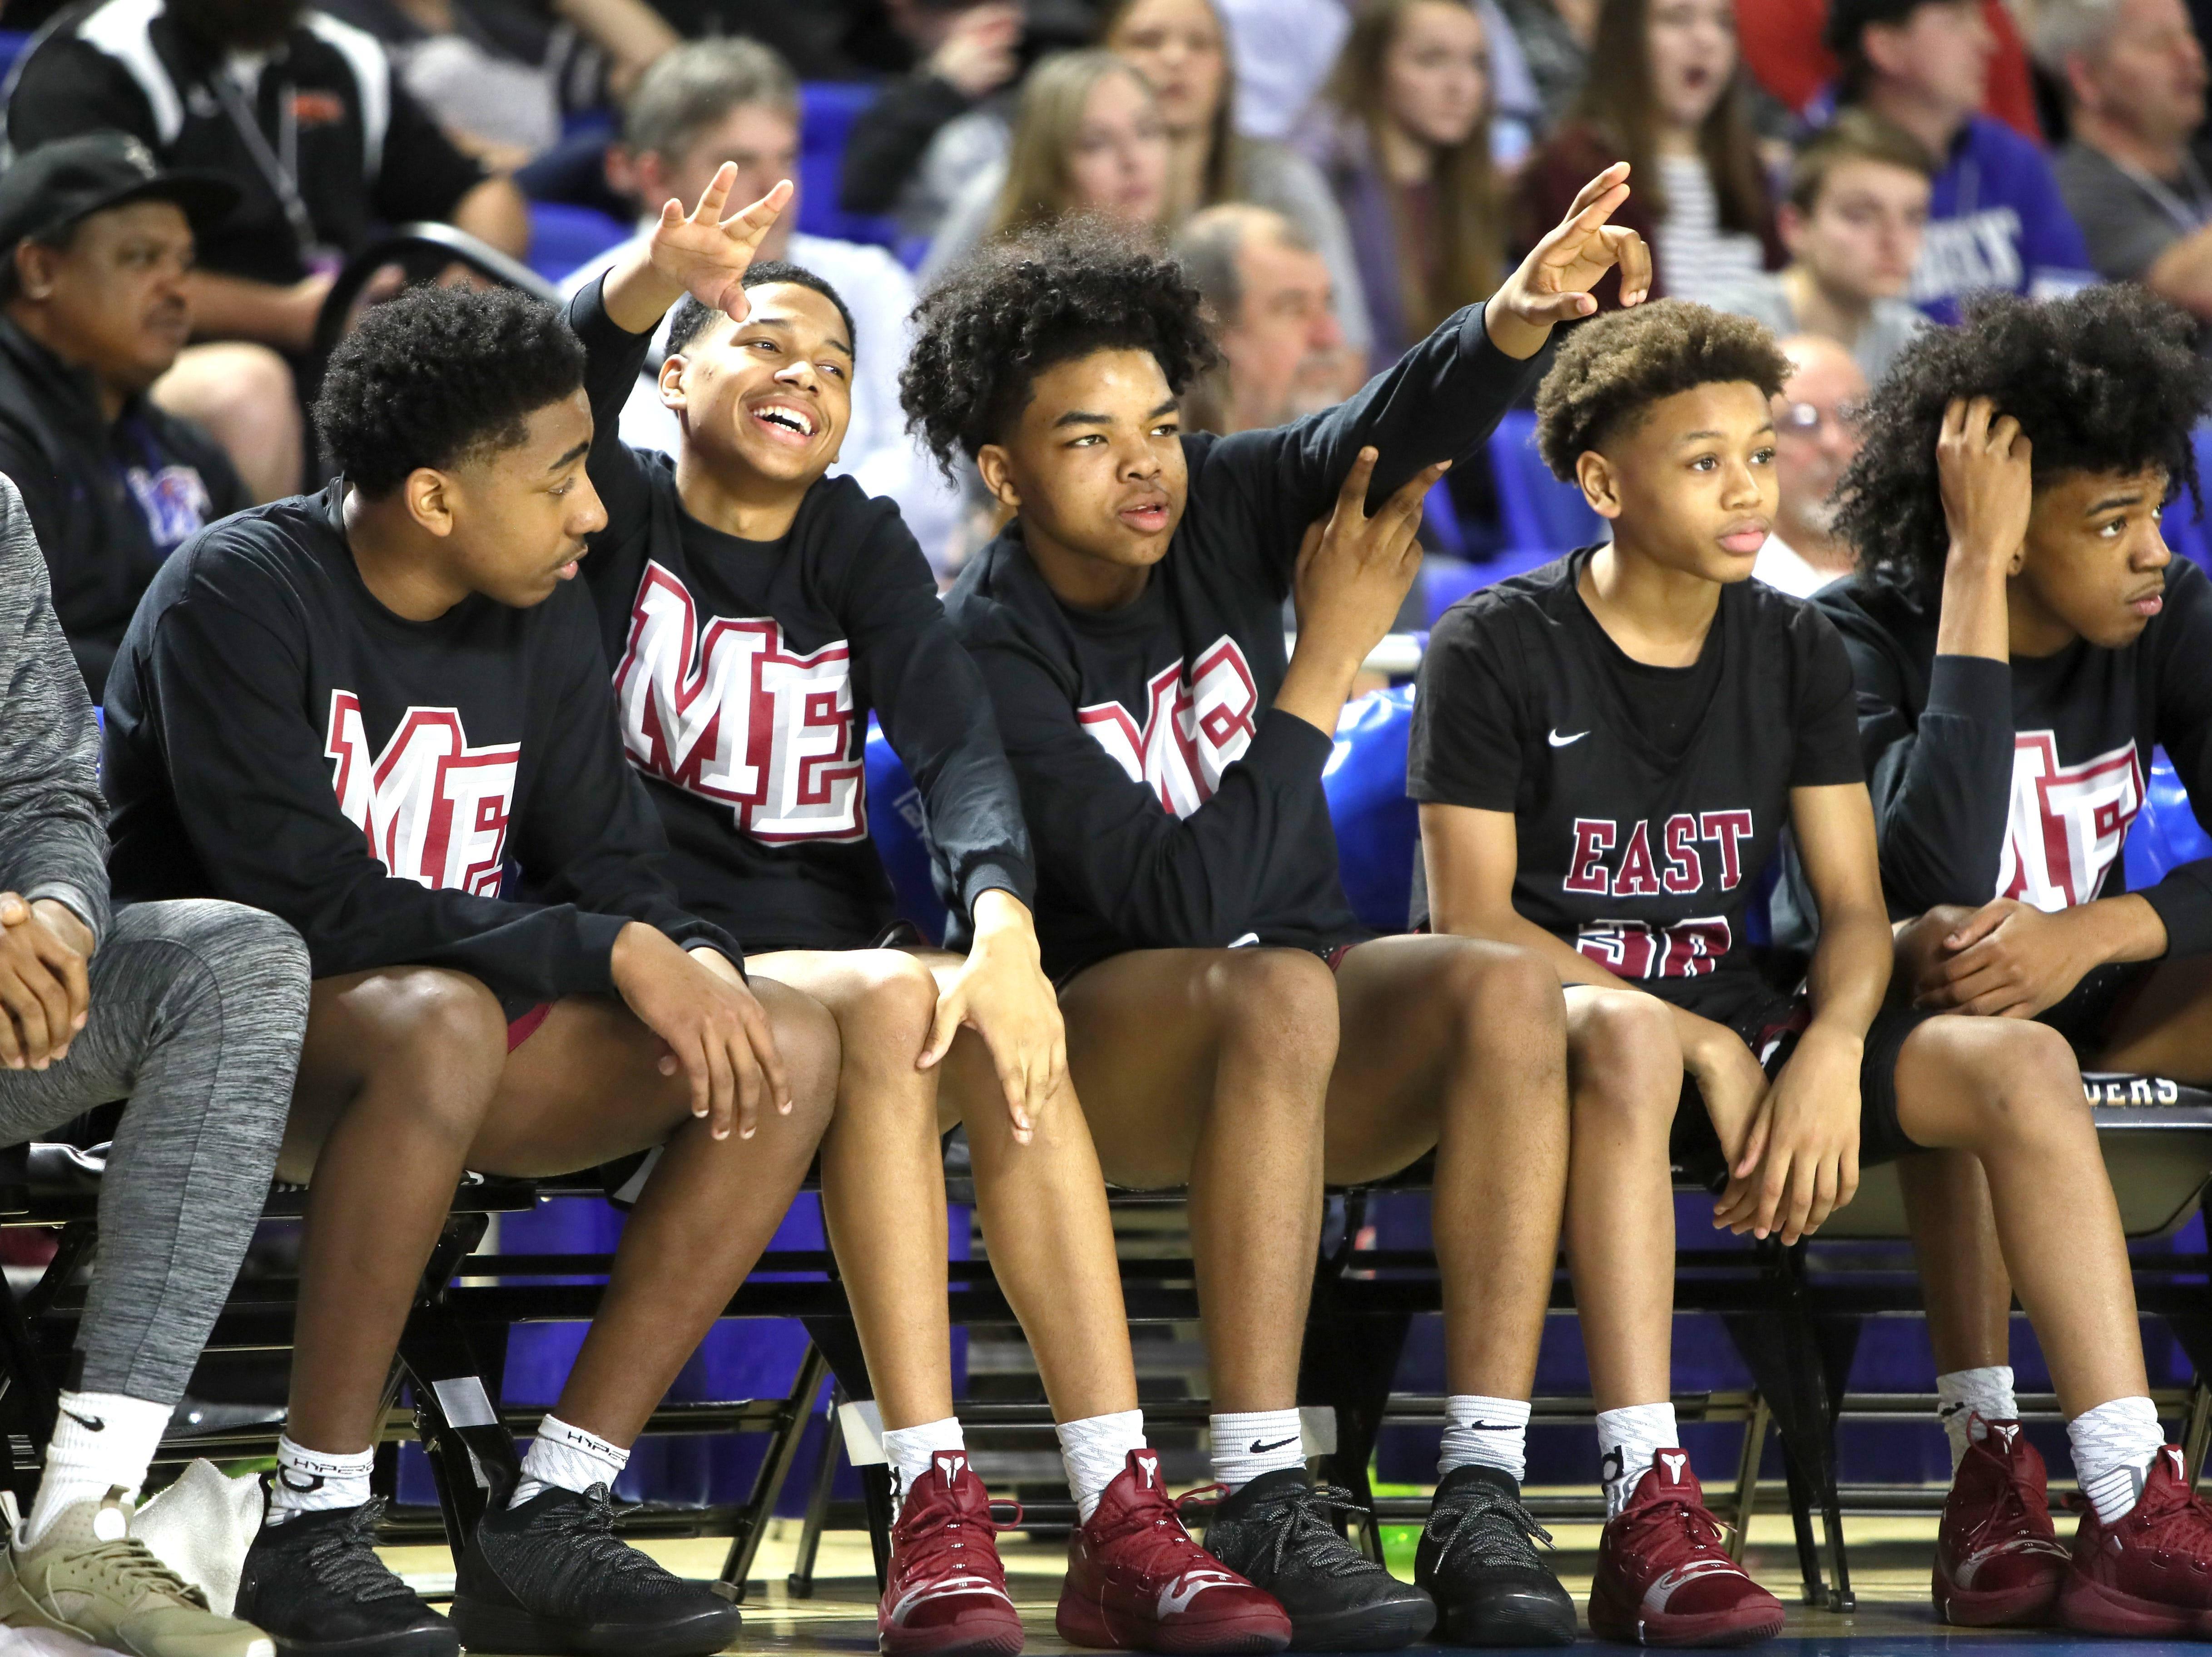 Memphis East players cheer on their teammates as they defeat Brentwood 46-42 during the Class AAA boys basketball state semifinal at the Murphy Center in Murfreesboro, Tenn. on Friday, March 15, 2019.